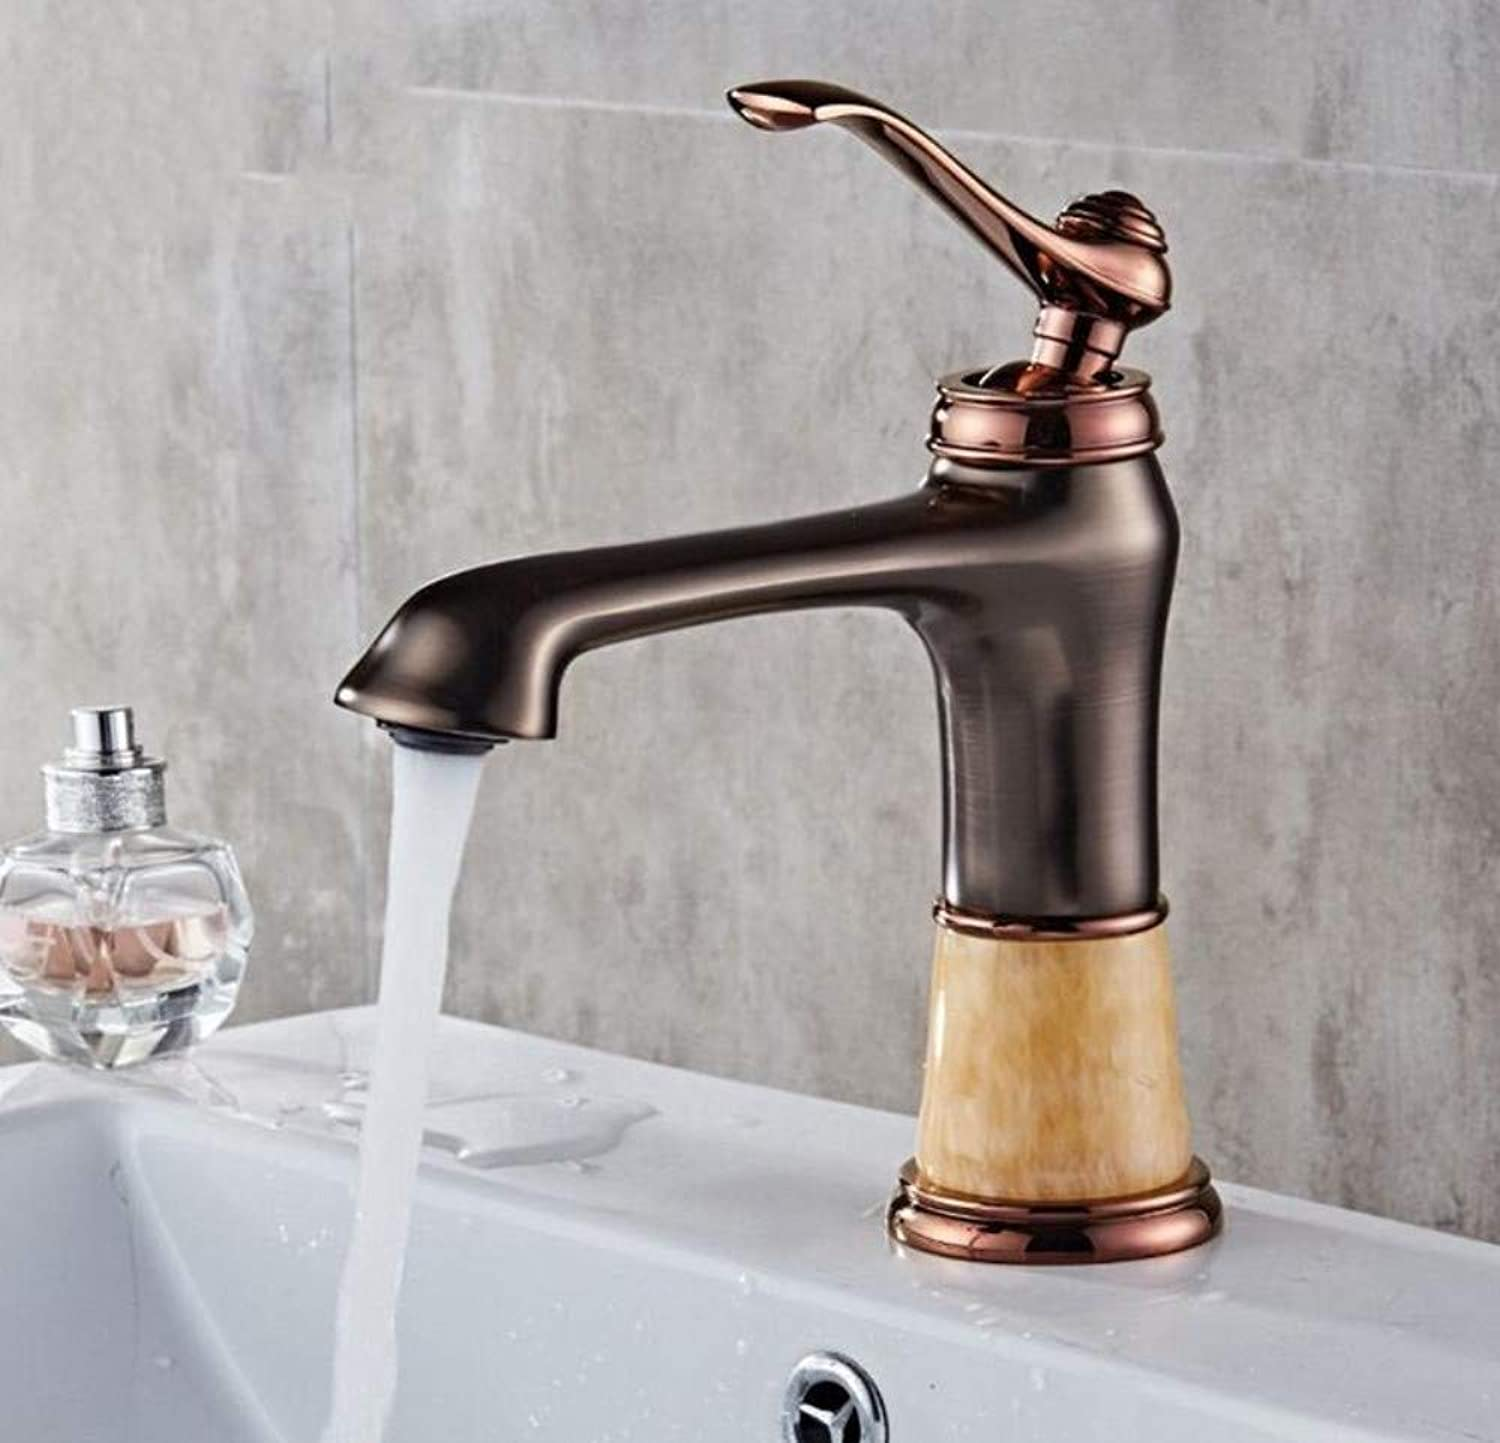 Modern Waterfall Copper Hot and Cold Kitchen Sink Taps Kitchen Faucet Basin Hot and Cold Water Faucet